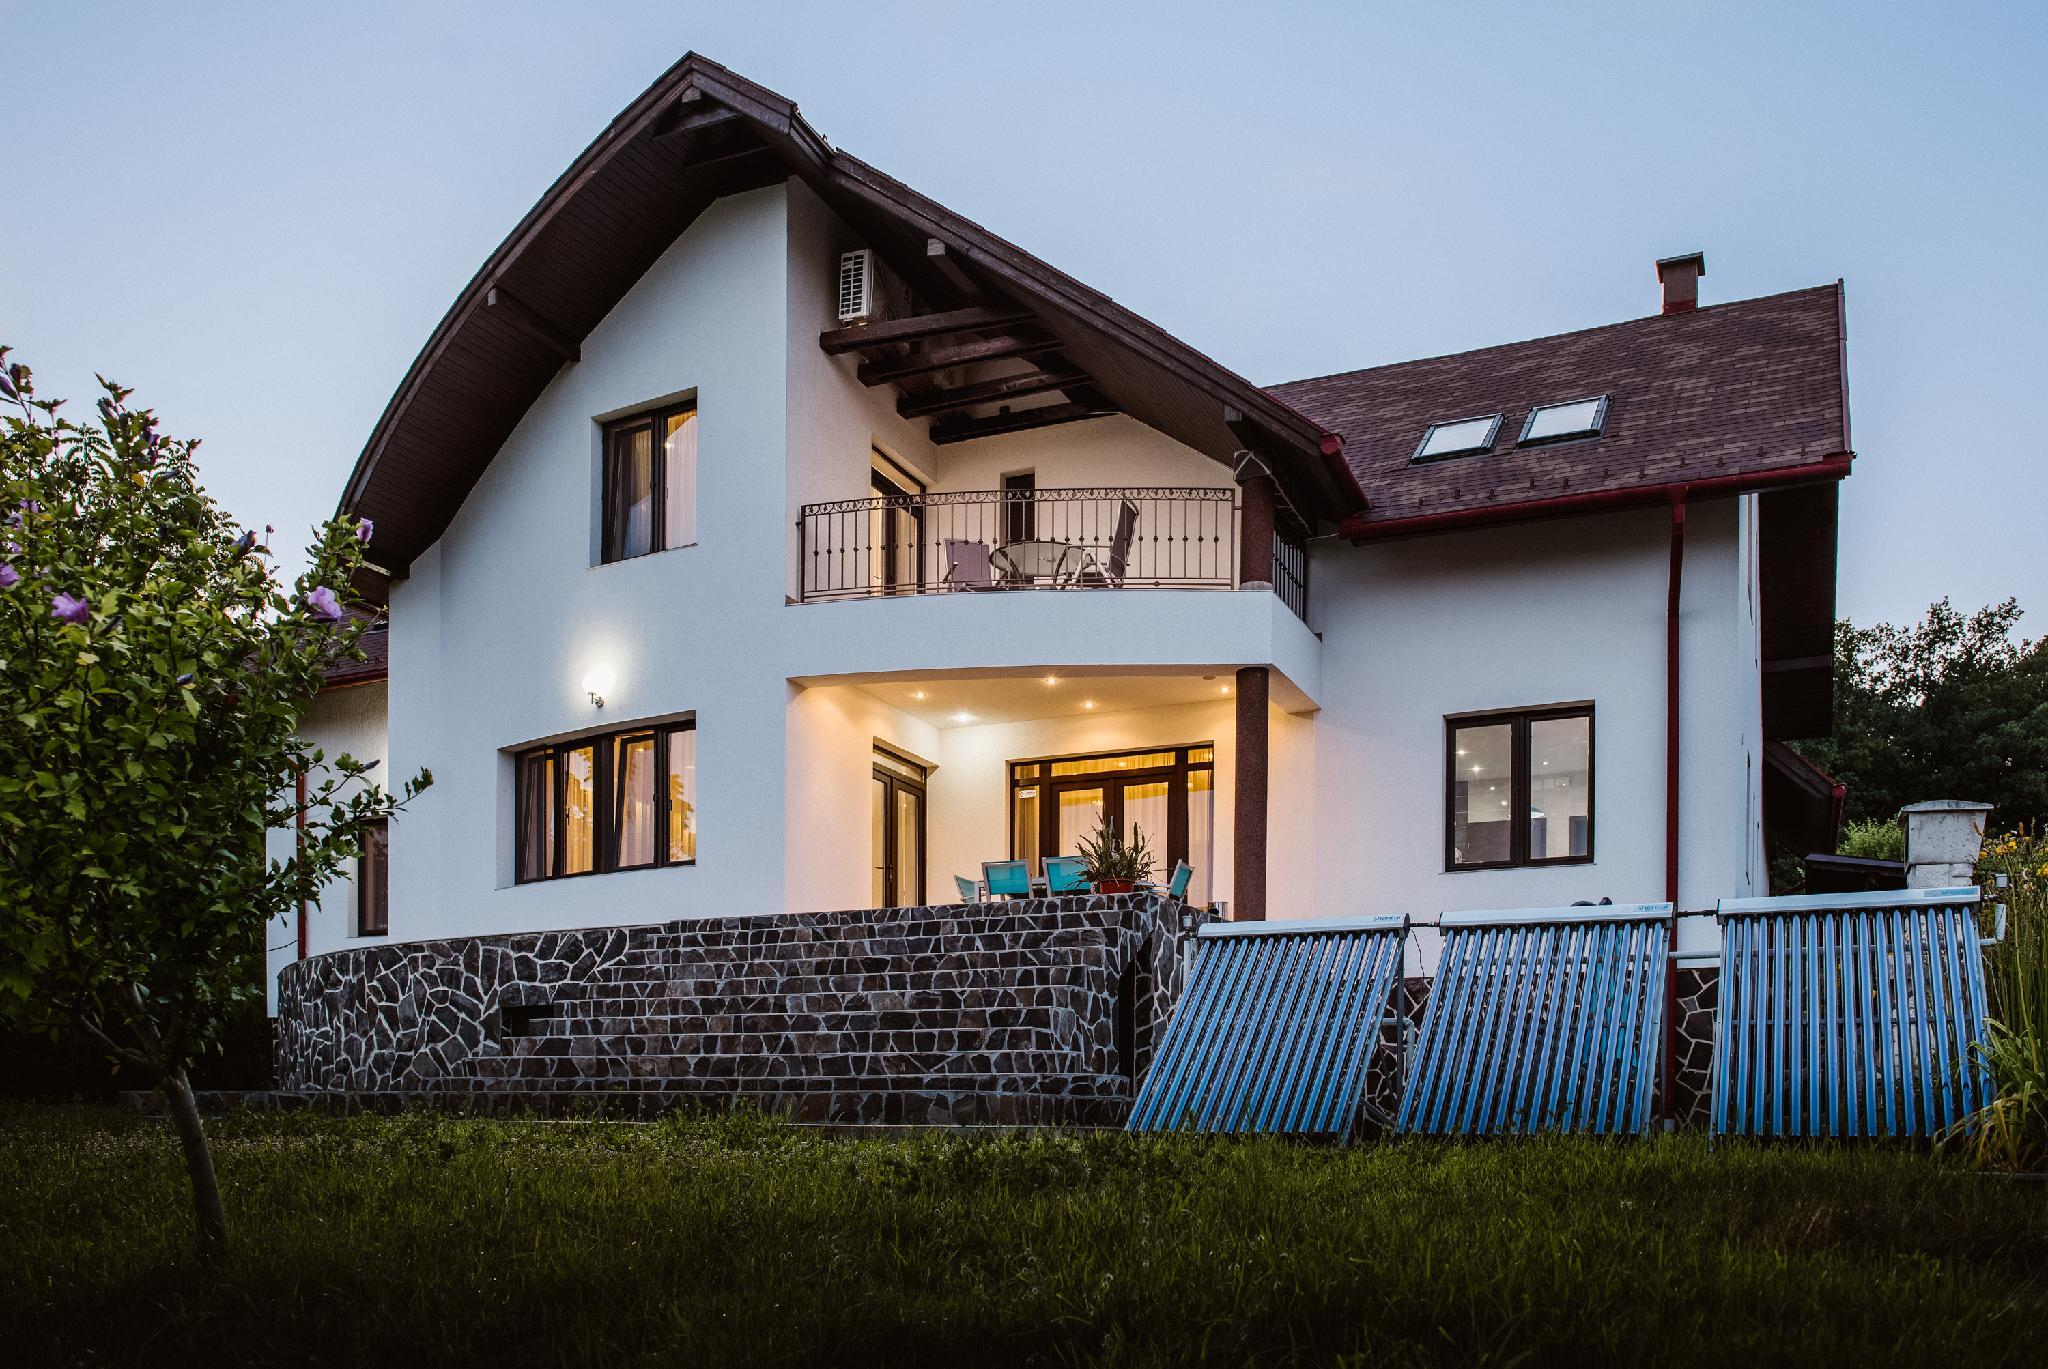 Luxury Villa, 4 Bedrooms, Sauna, Mountainside